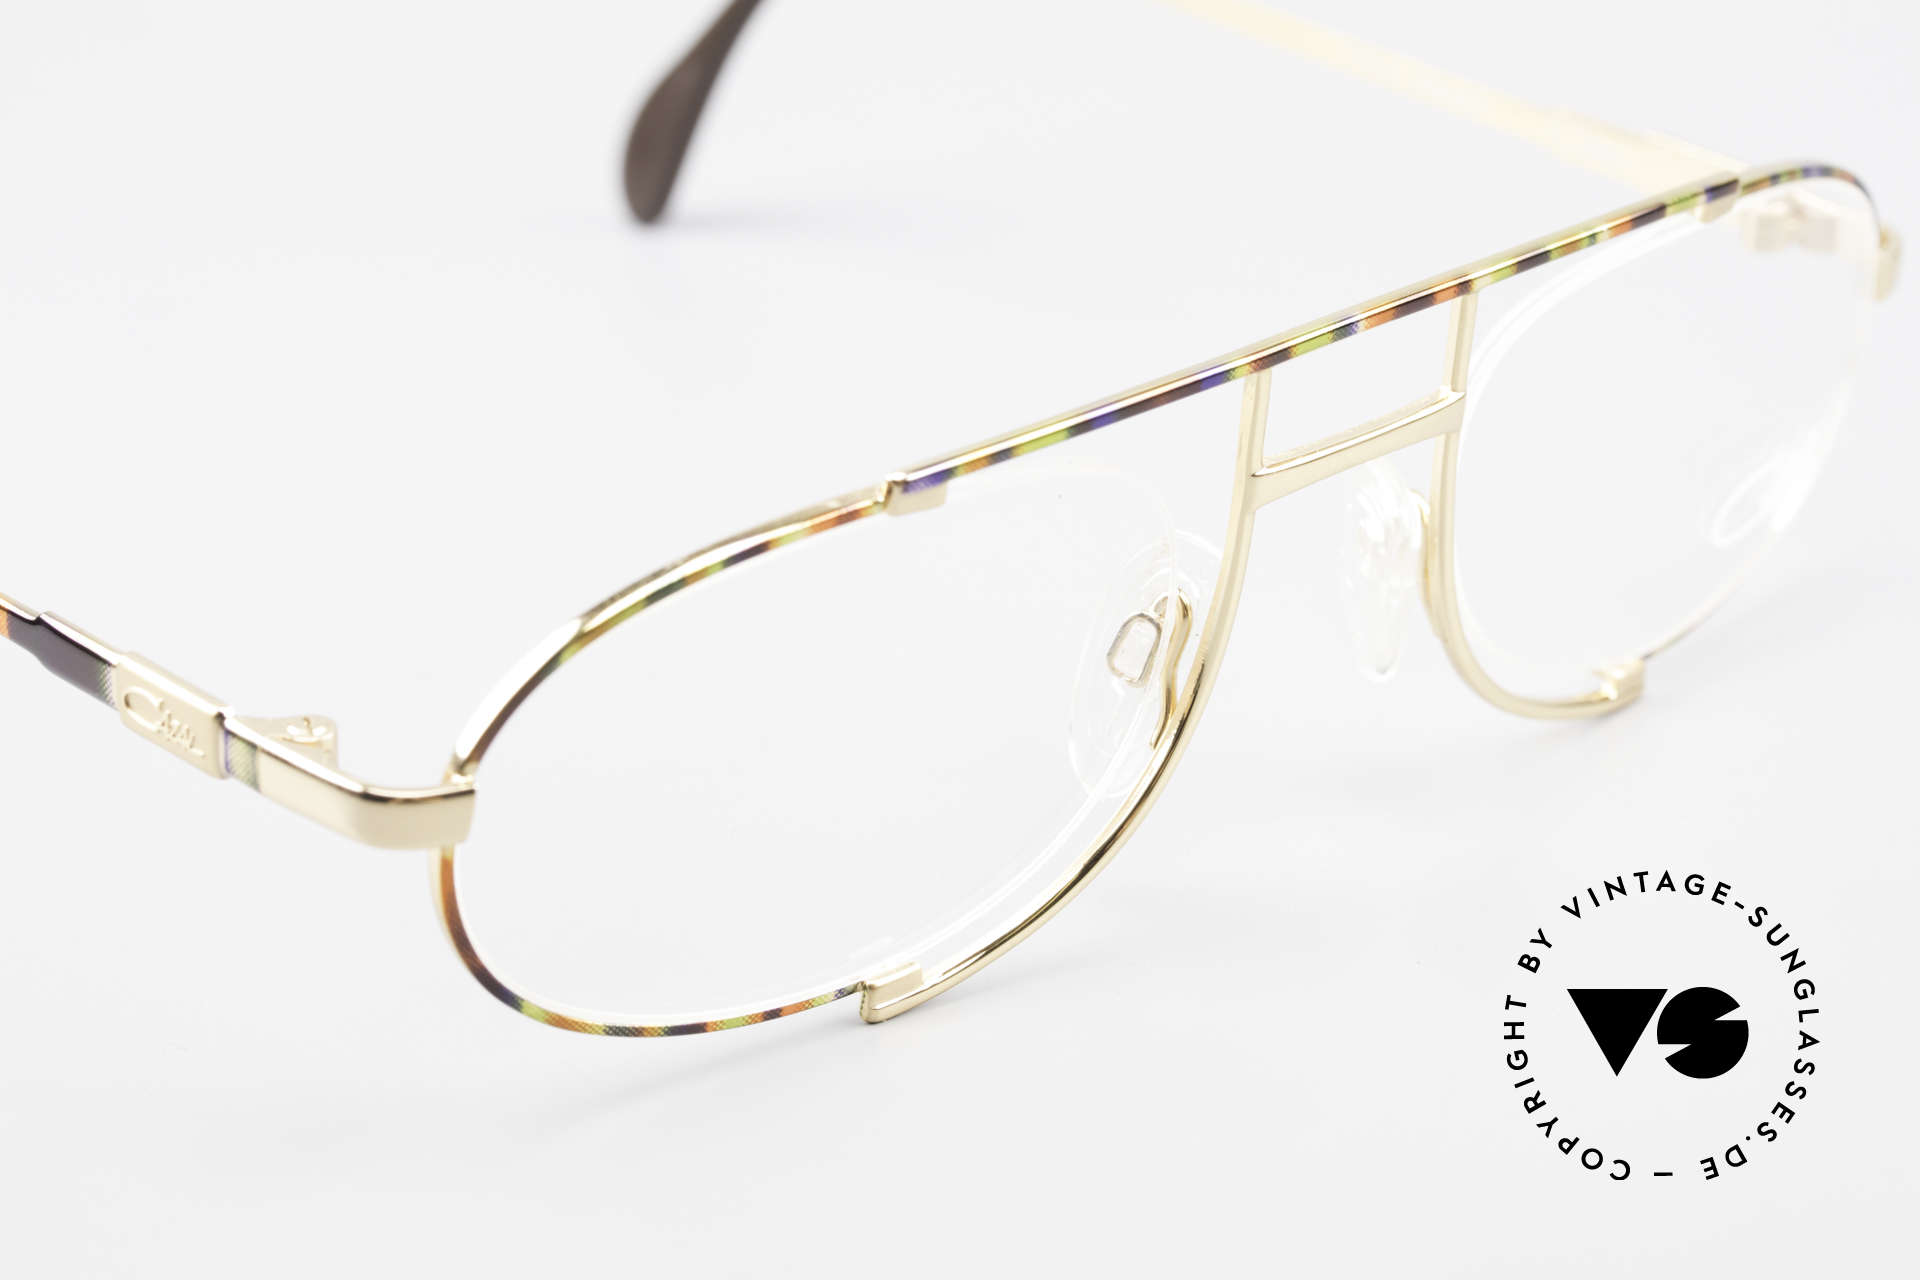 Cazal 753 Rare 1990's Designer Glasses, Cazal called the paintwork 'maize-pistachio-copper', Made for Men